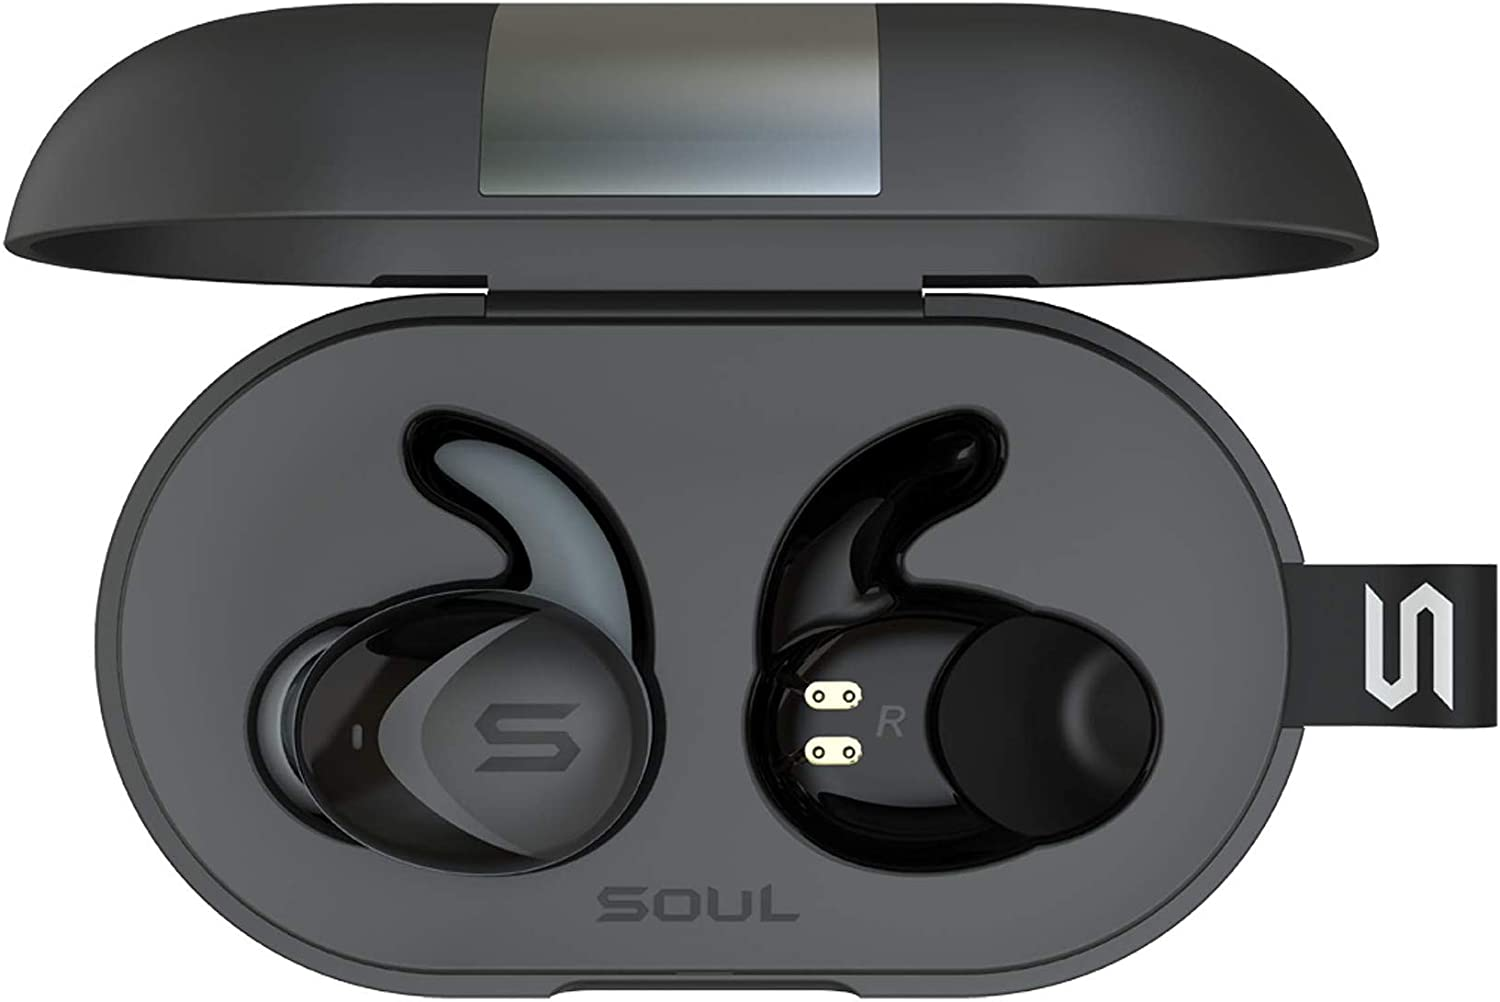 Soul Electronics ST-XS2 High Performance True Wireless Earphones, IPX7 Waterproof Bluetooth 5.0 Earbuds Noise Cancelling Sports Built-in Microphones for iPhone iPad Android Smartphones Tablets Laptop